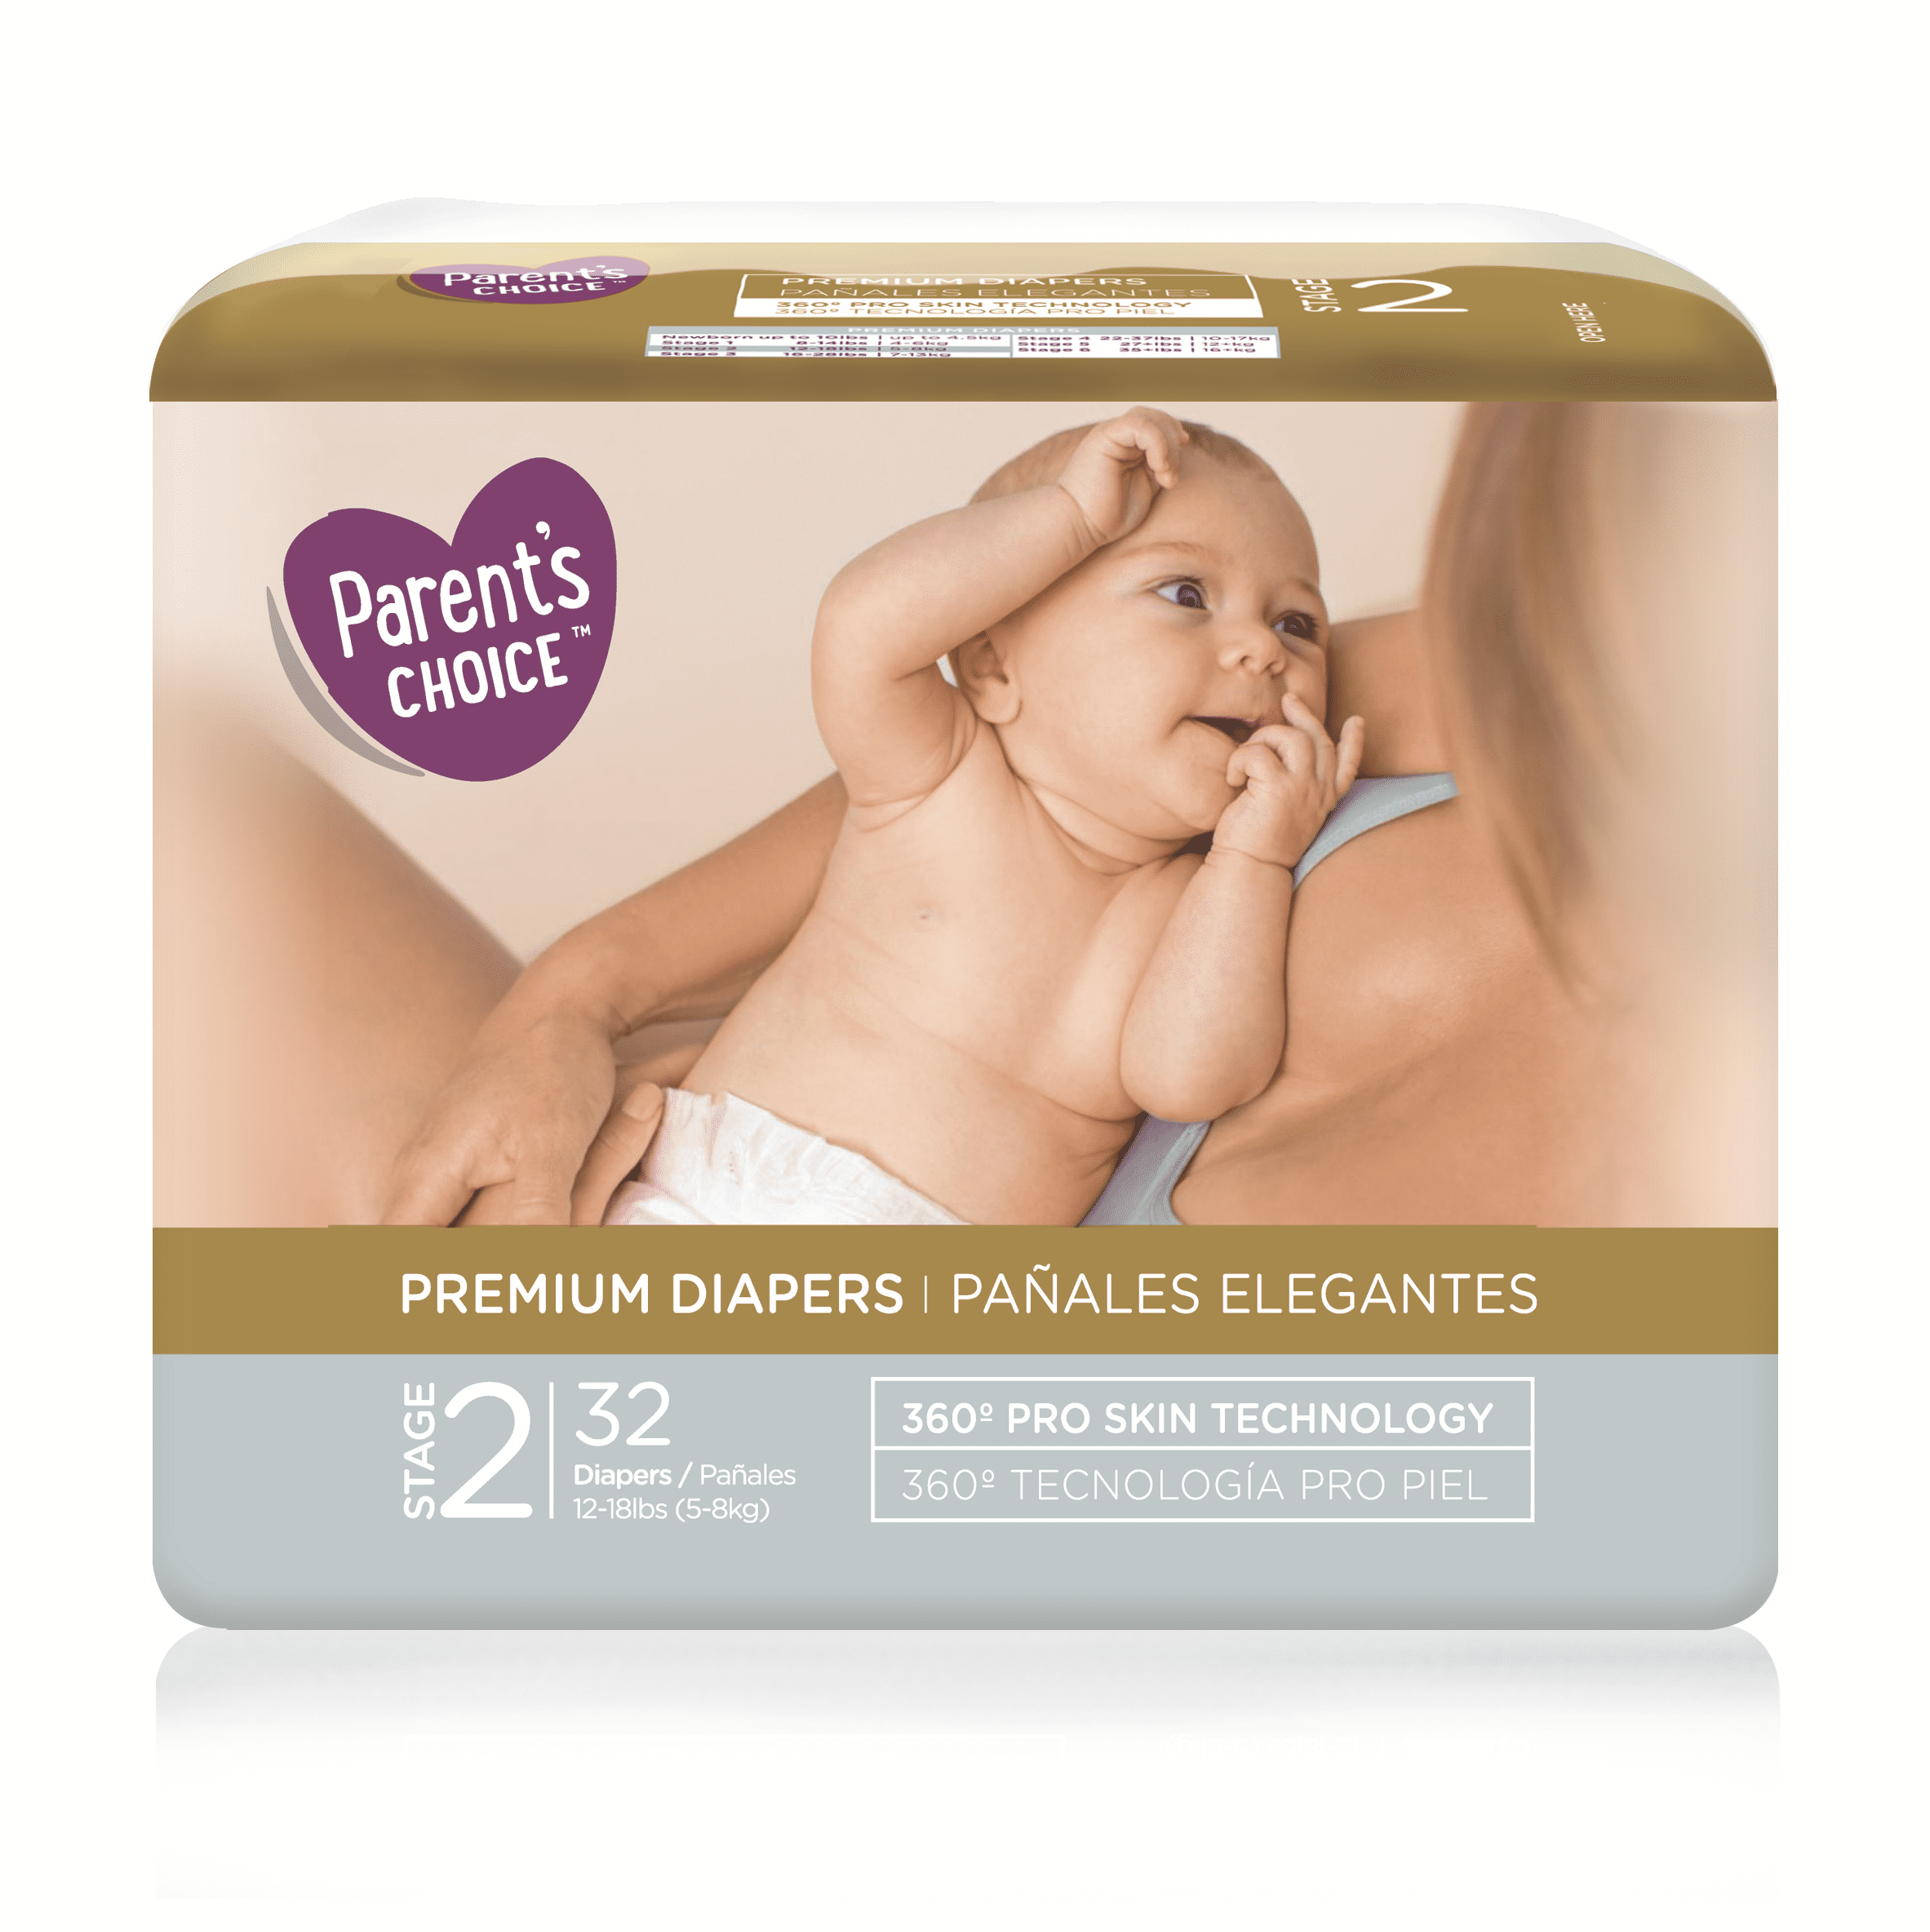 Parent's Choice Premium Diapers, Size 2, 32 Diapers